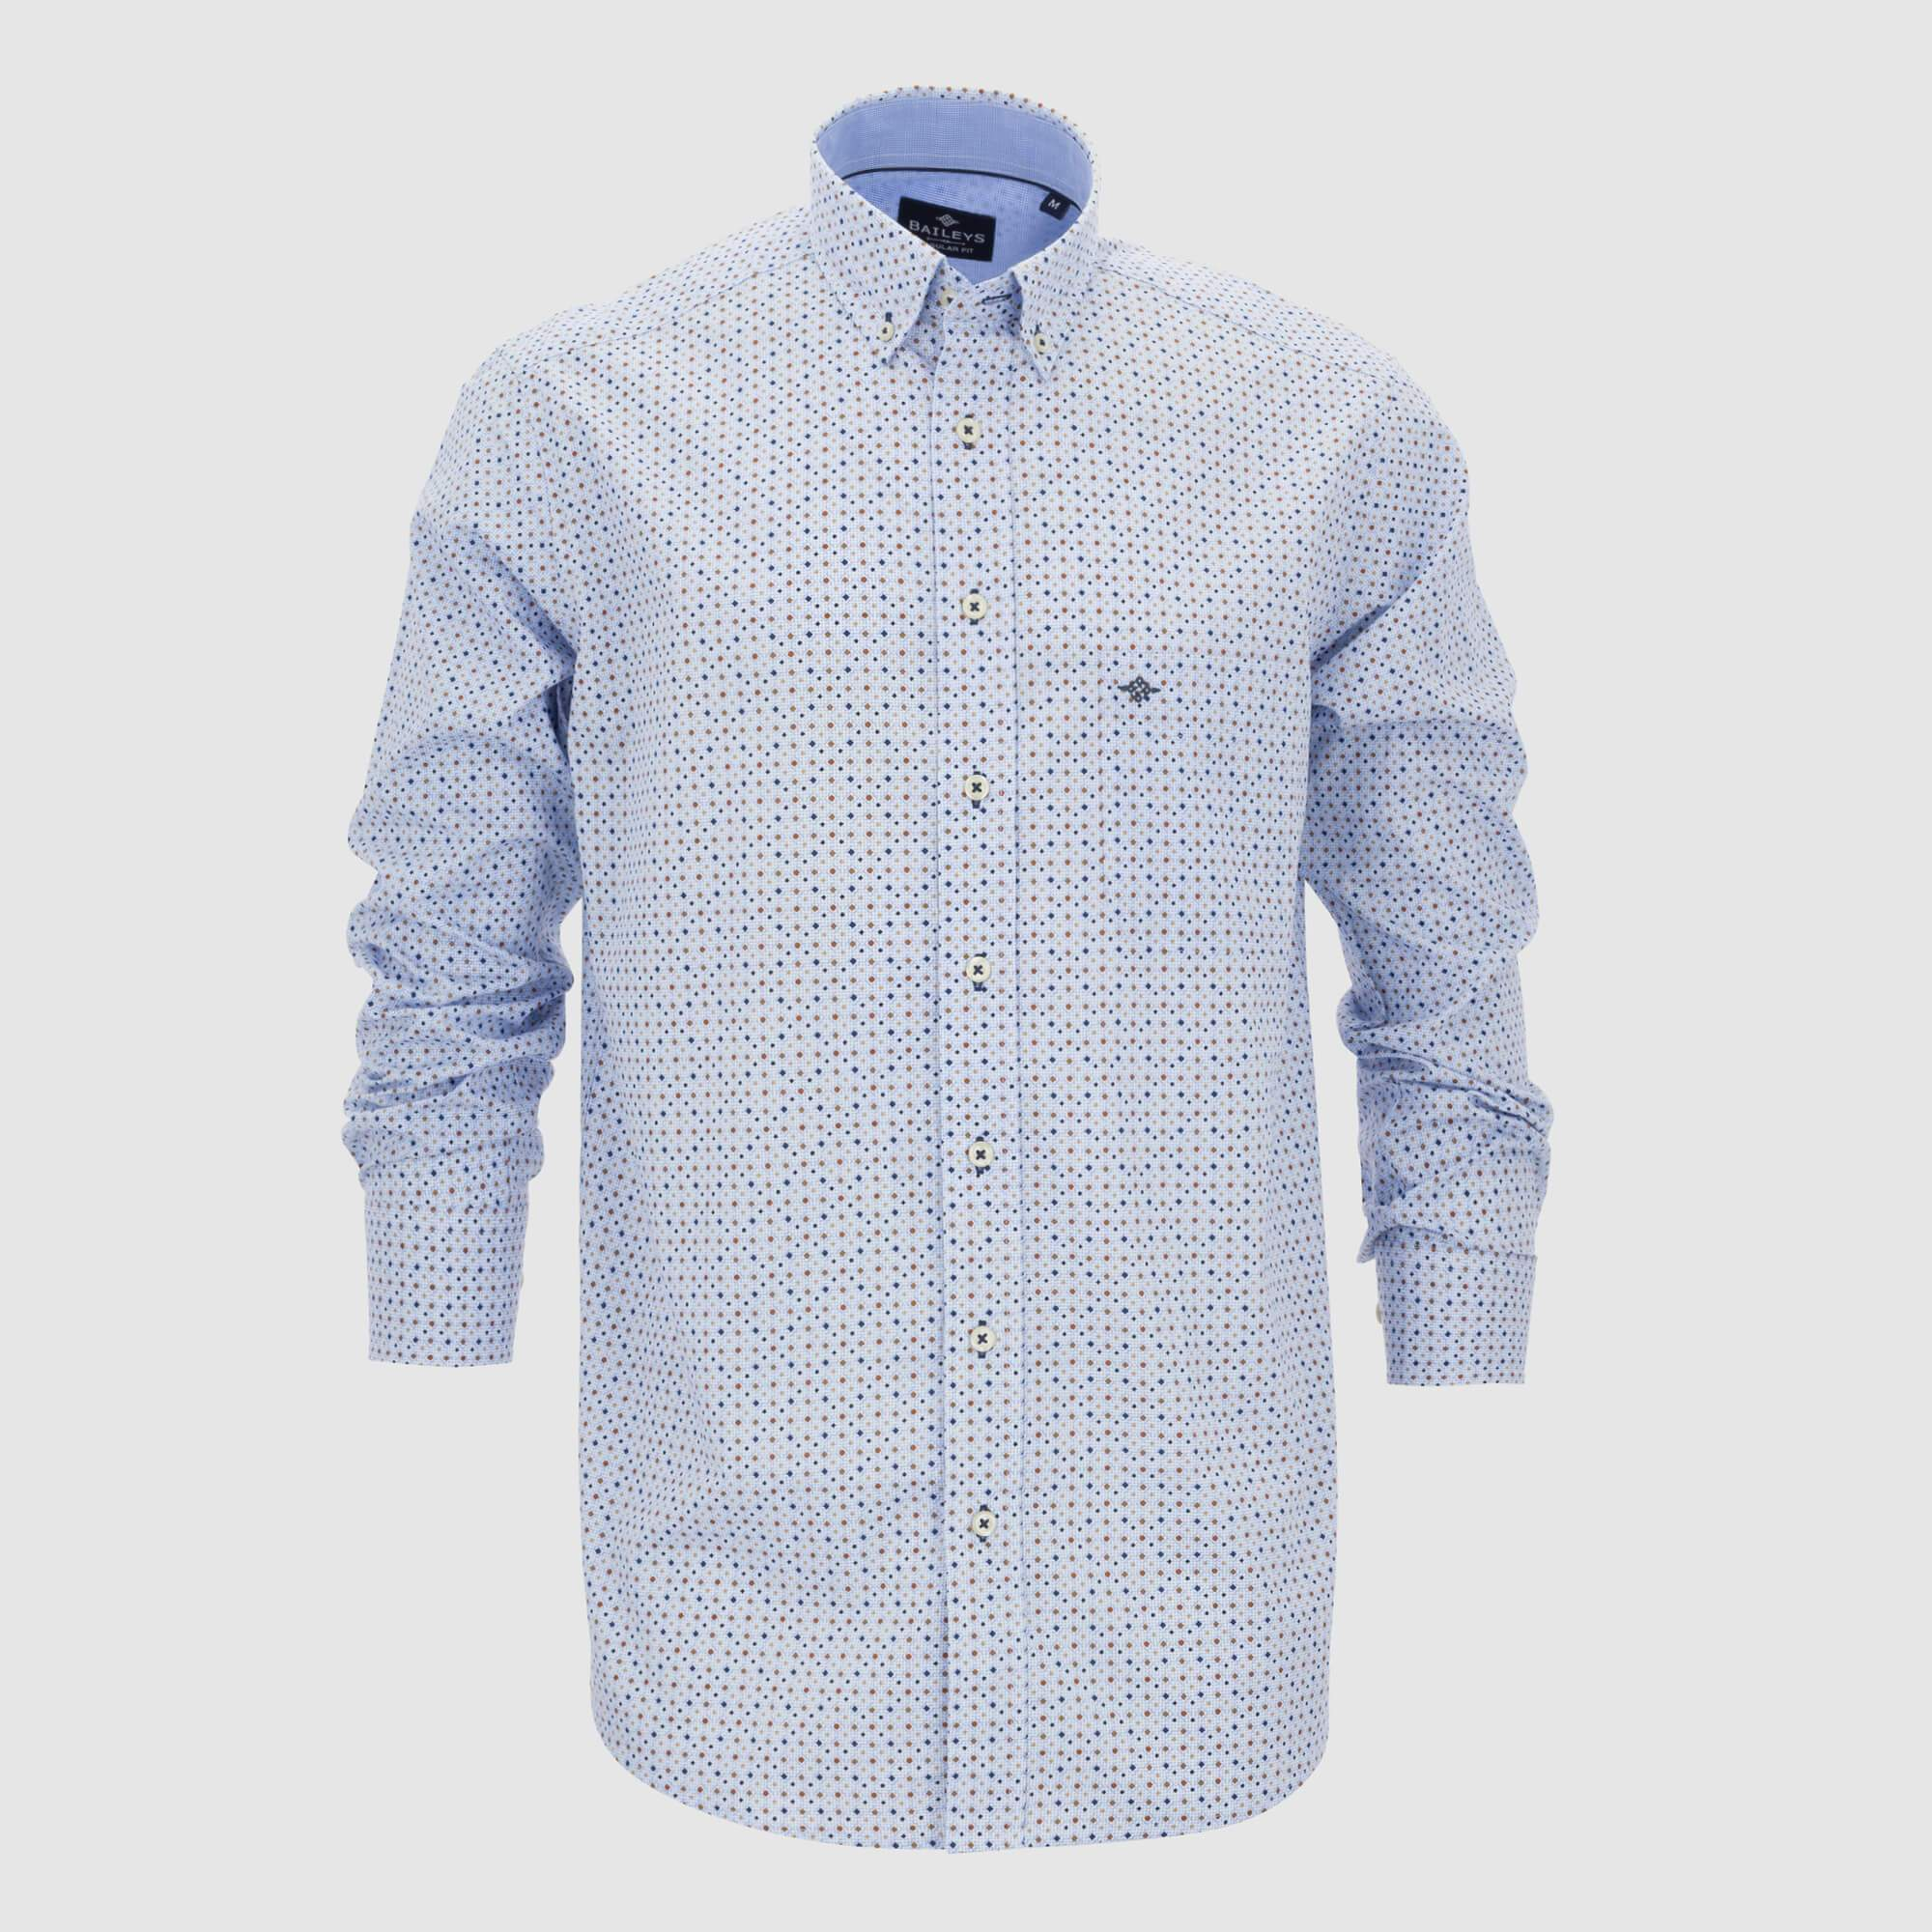 Camisa estampada regular fit 207681